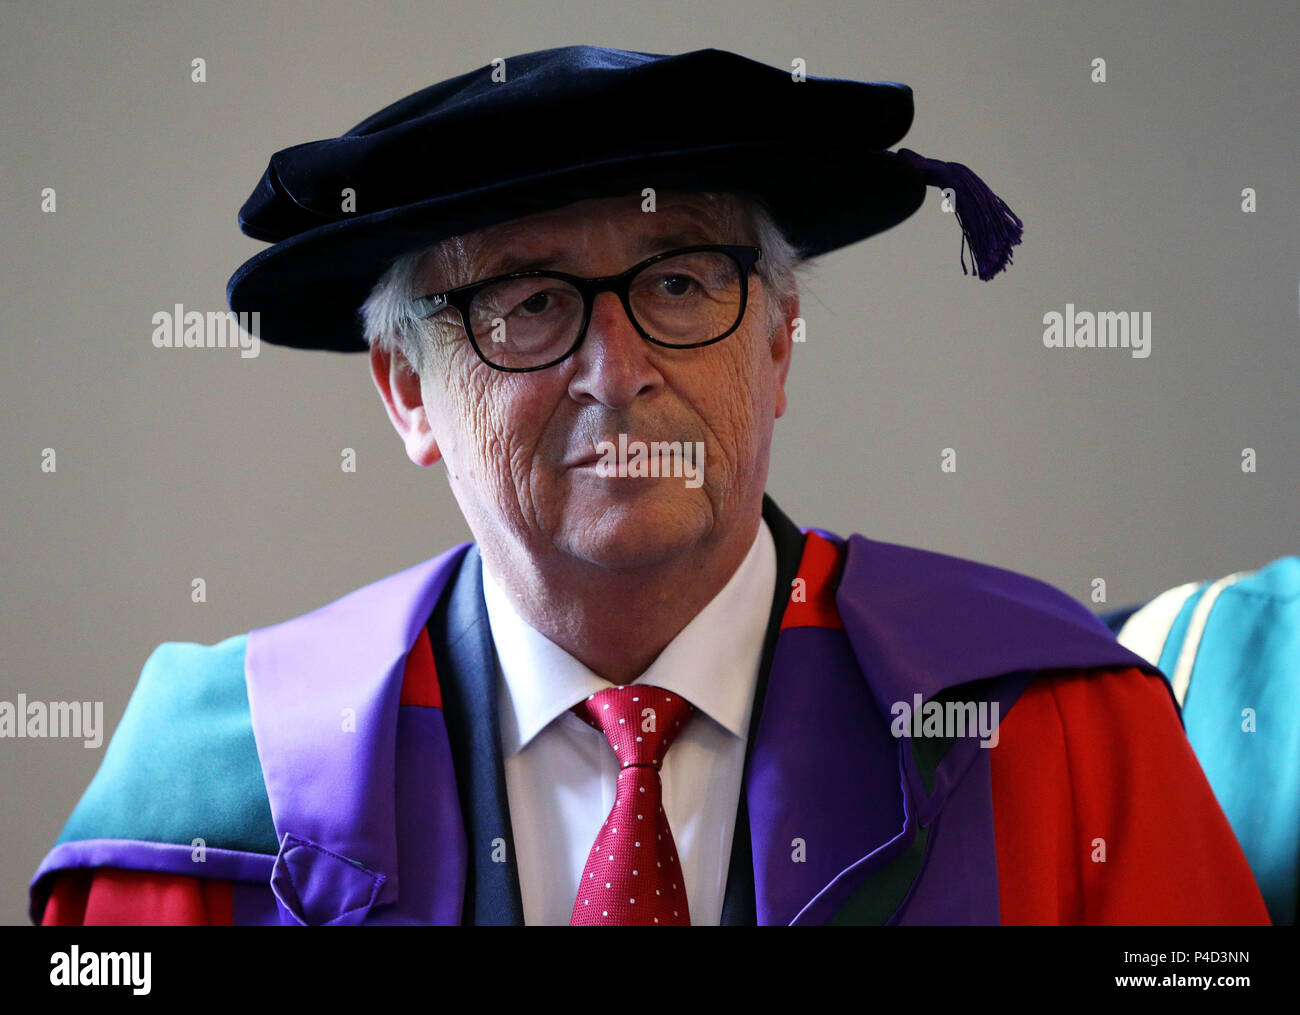 President of the European Commission Jean-Claude Juncker at the Royal College of Surgeons where he received an honorary doctorate during his visit to Dublin, ahead of the European Council on 28-29 June to discuss Brexit and other issues currently on the European agenda. - Stock Image